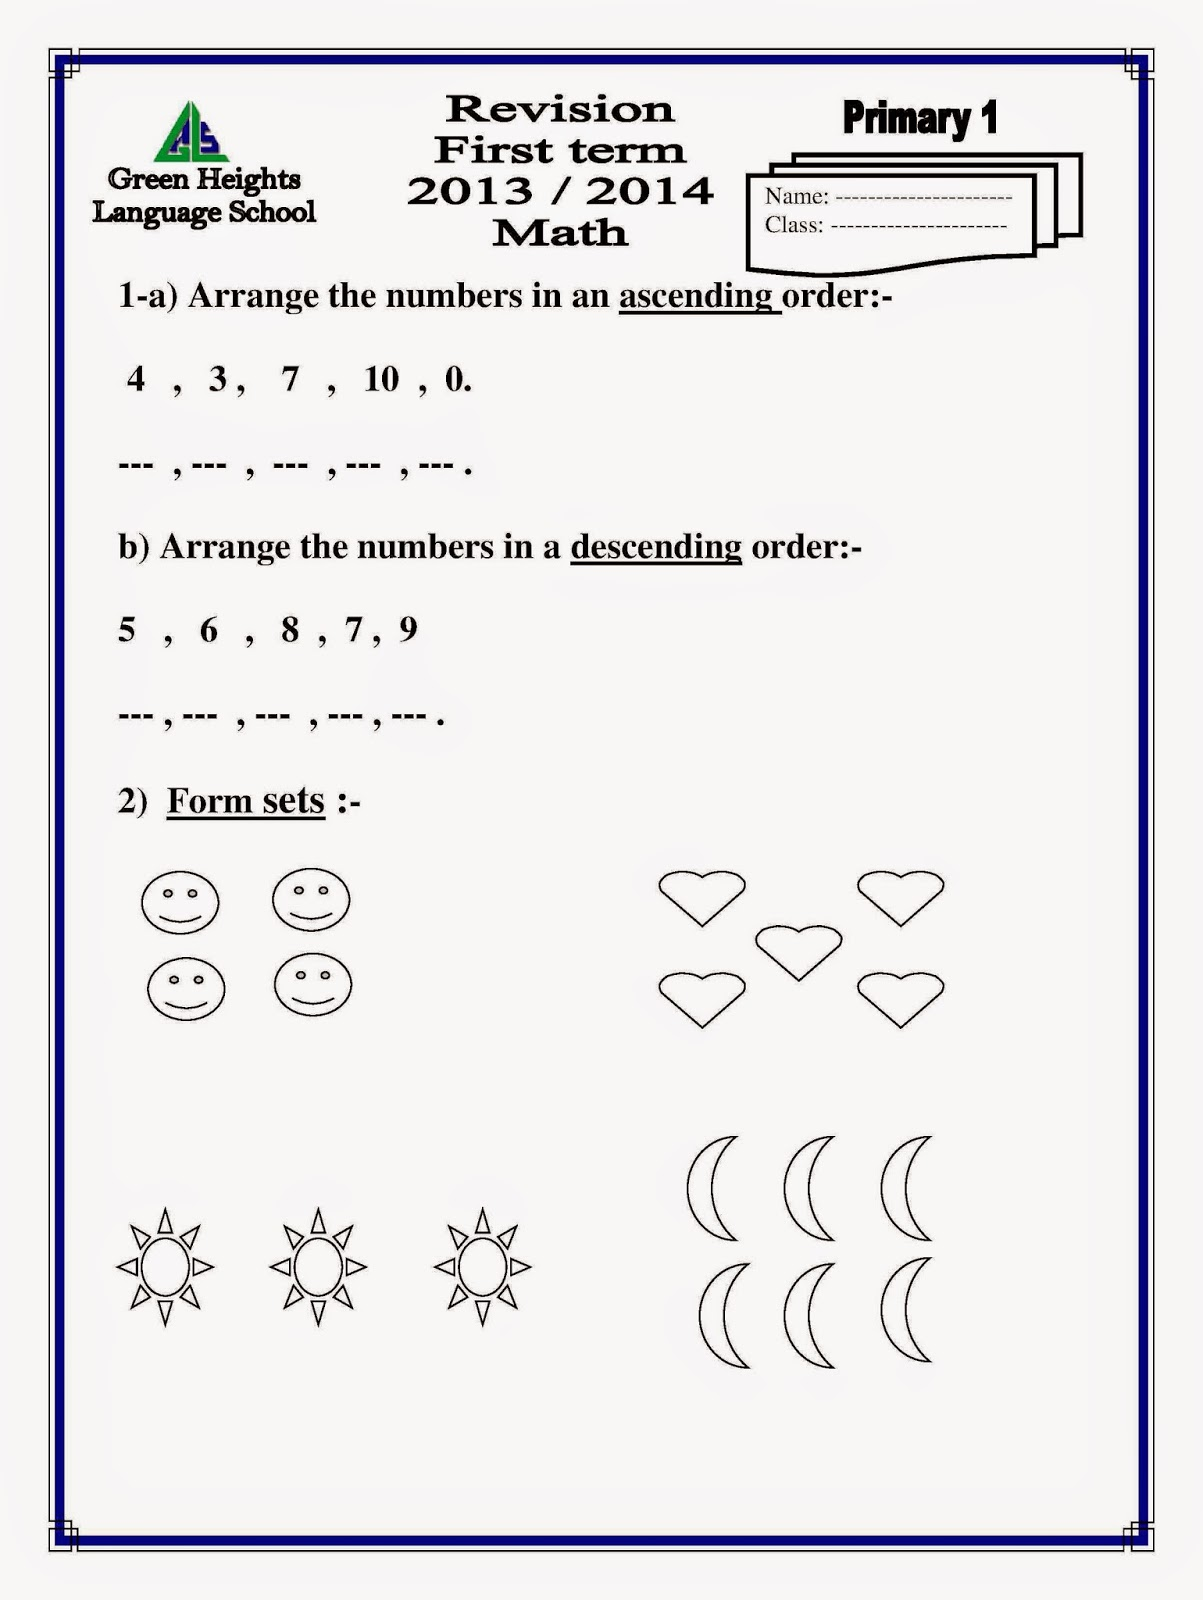 hight resolution of Std 1 Ascending Order Worksheet   Printable Worksheets and Activities for  Teachers